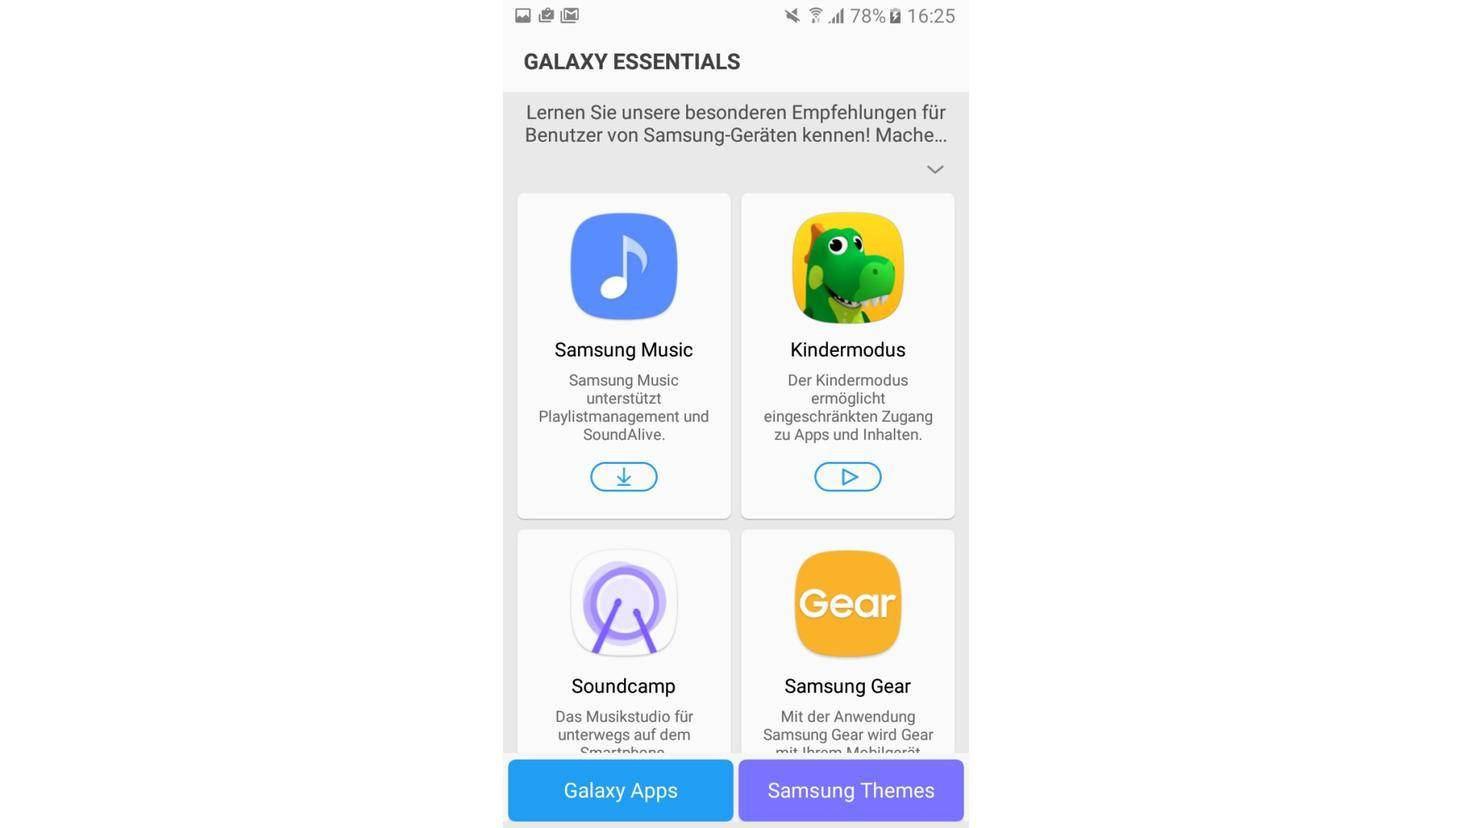 Galaxy A3 2017 Galaxy Essentials